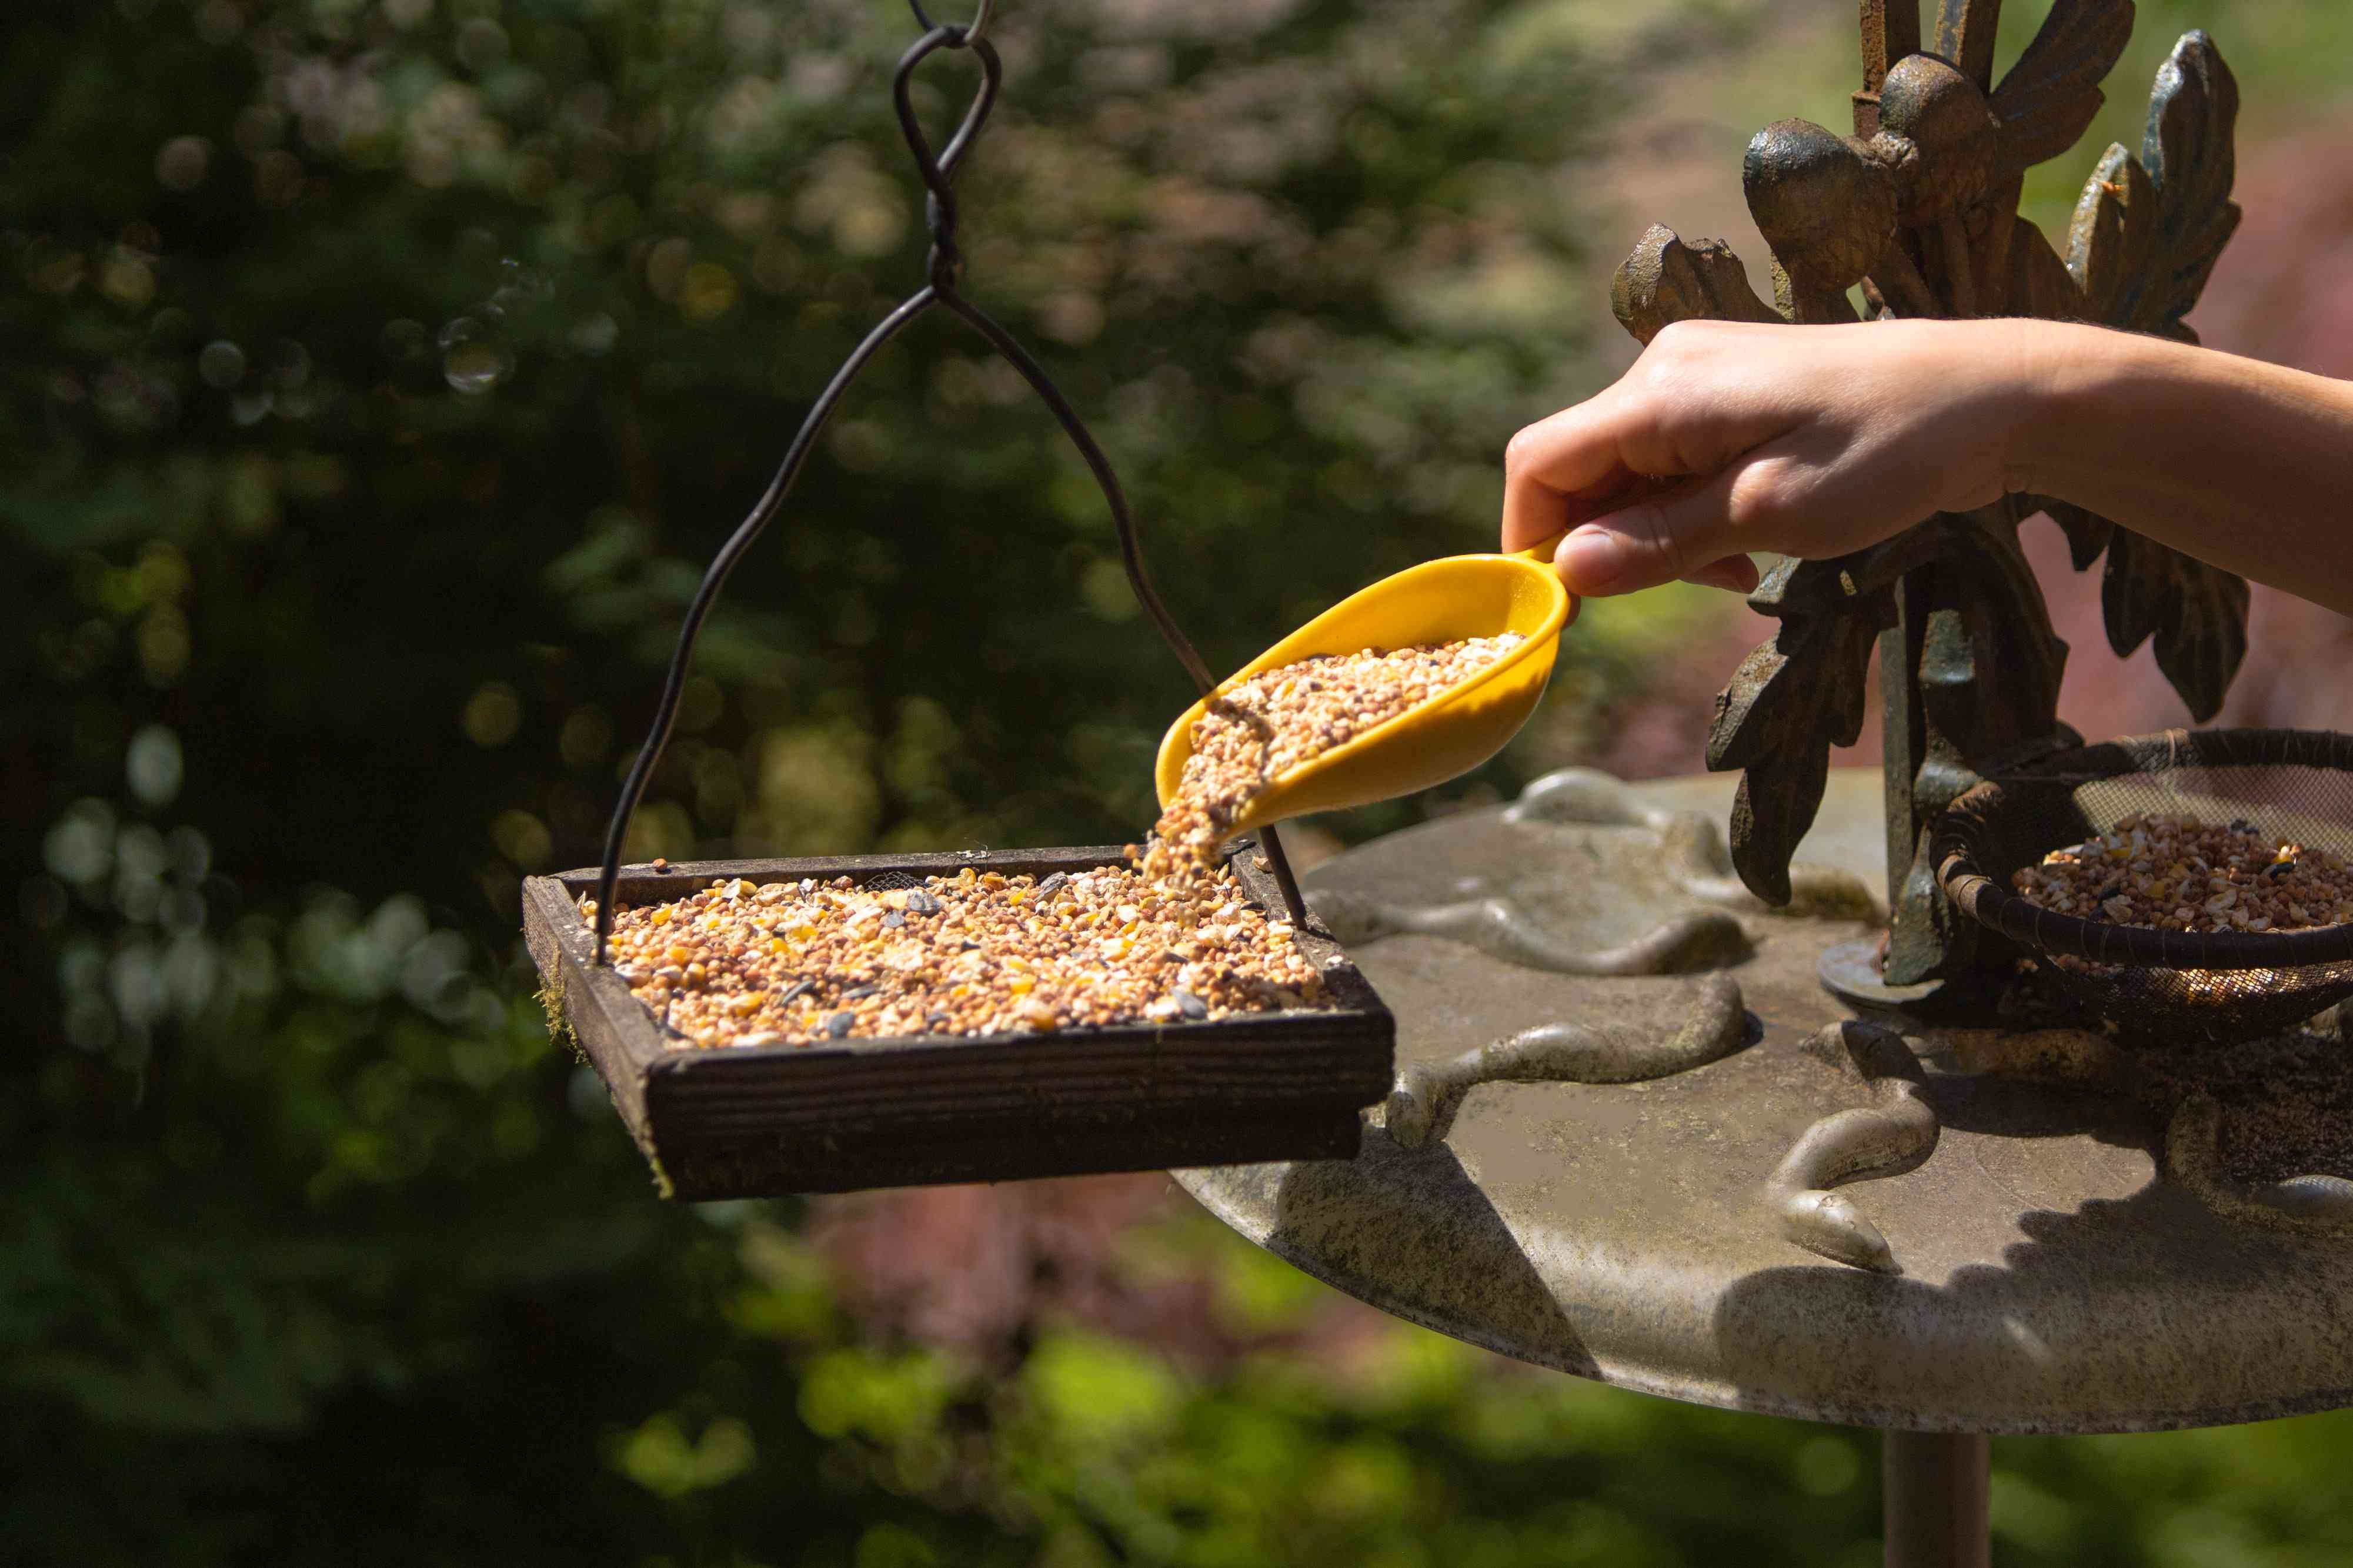 person placing seed in a bird feeder